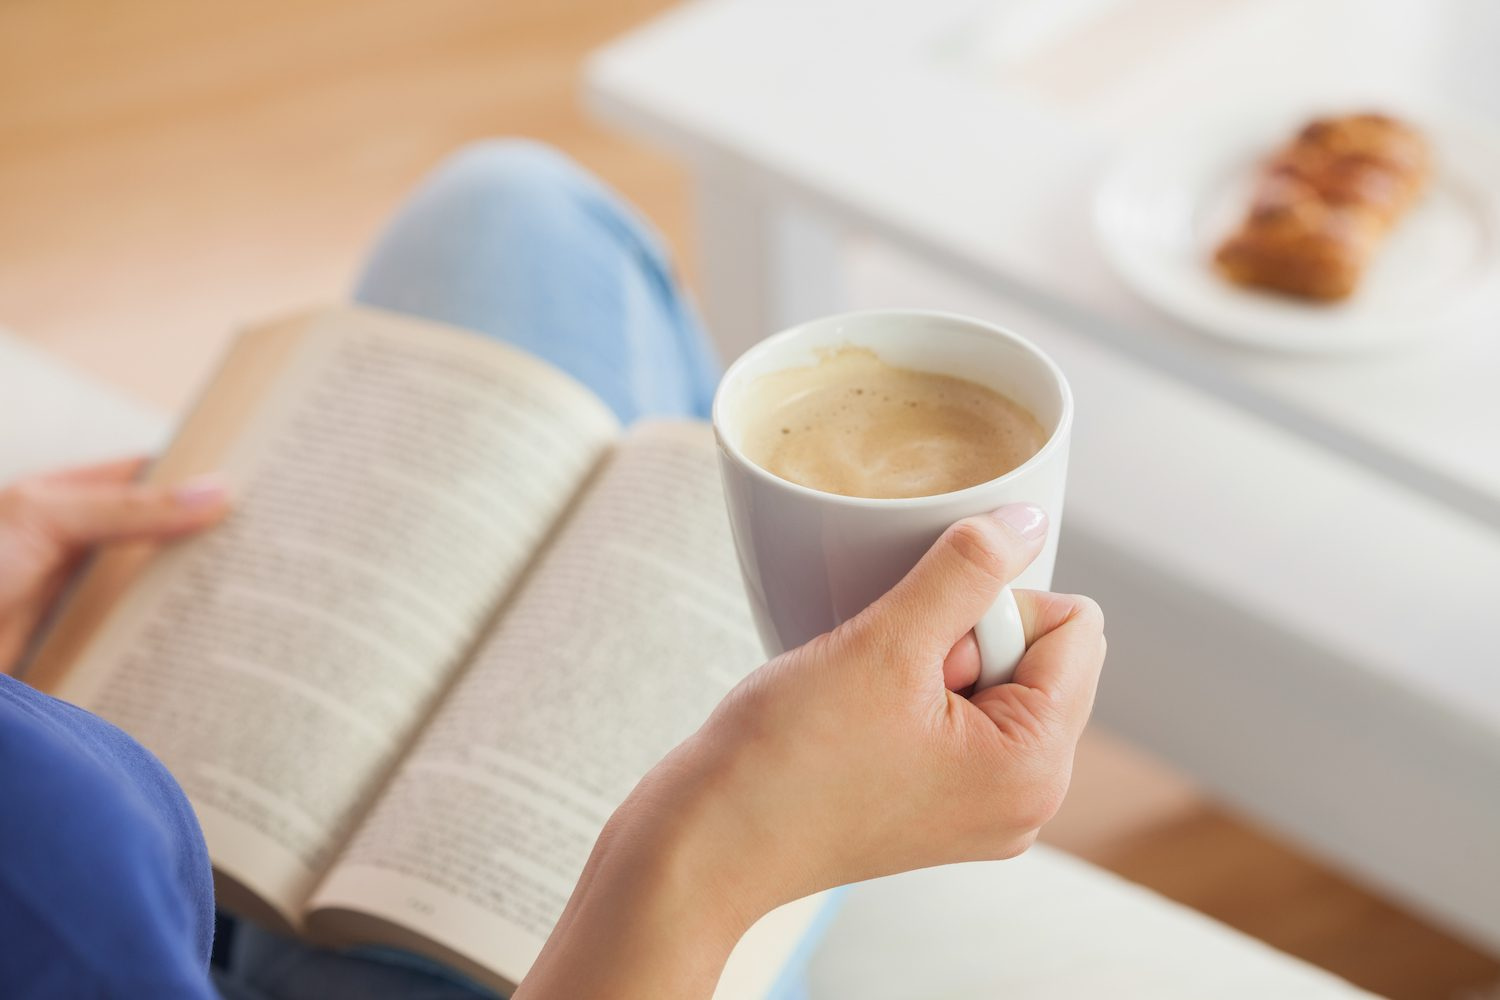 Woman holding a coffee cup while reading